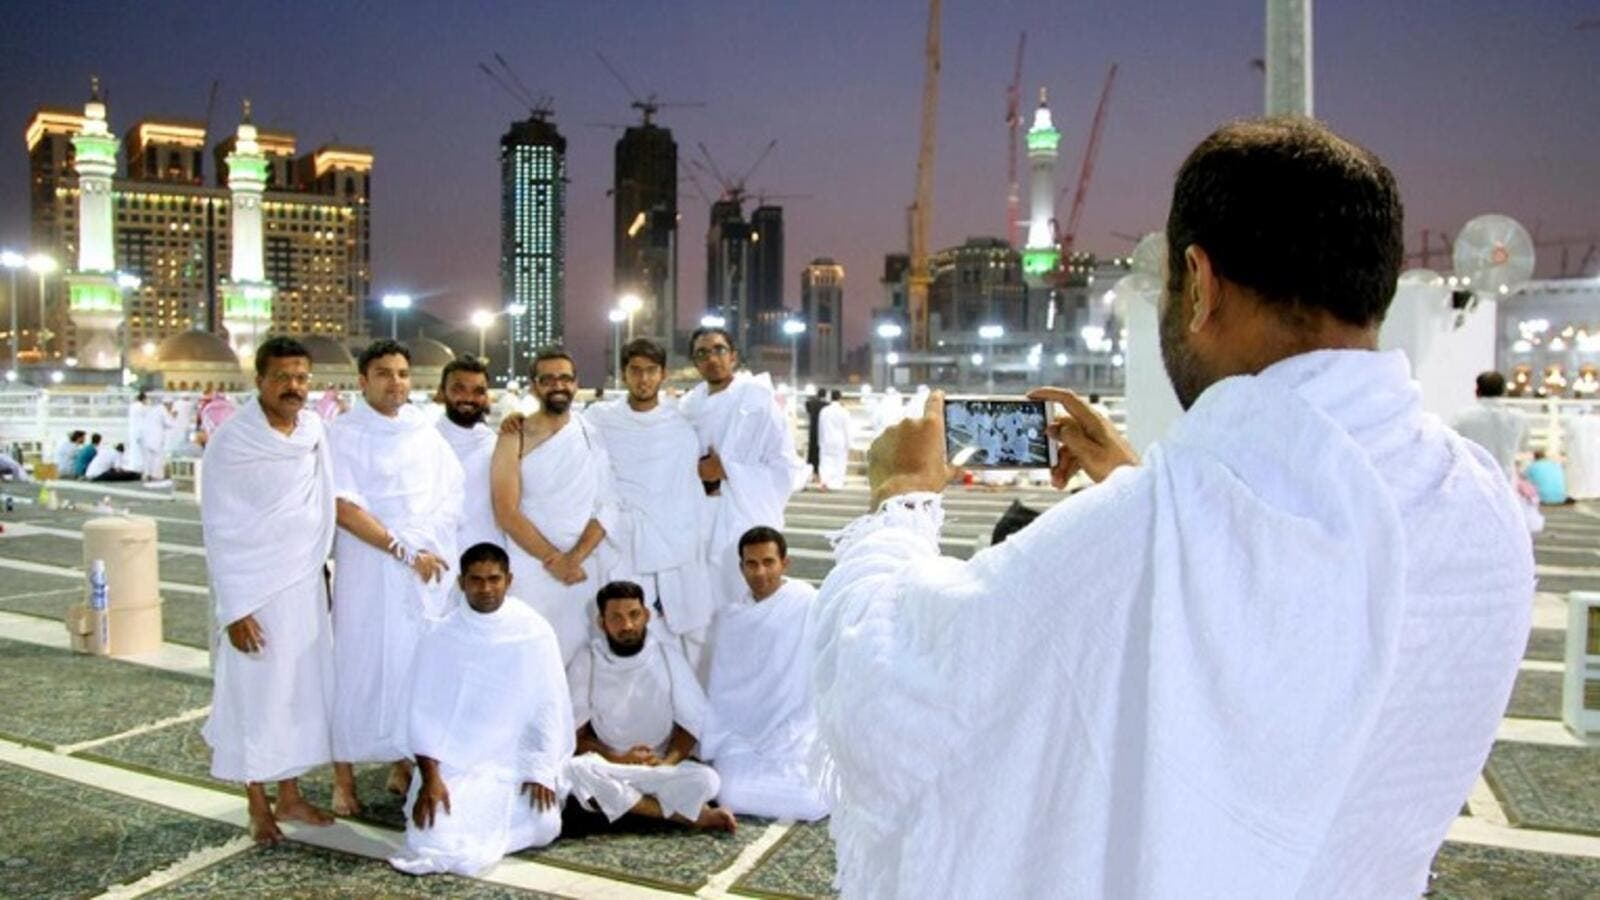 The report, by Arabian Travel Market (ATM), found that religious tourism in the kingdom is still driving demand. (AFP)